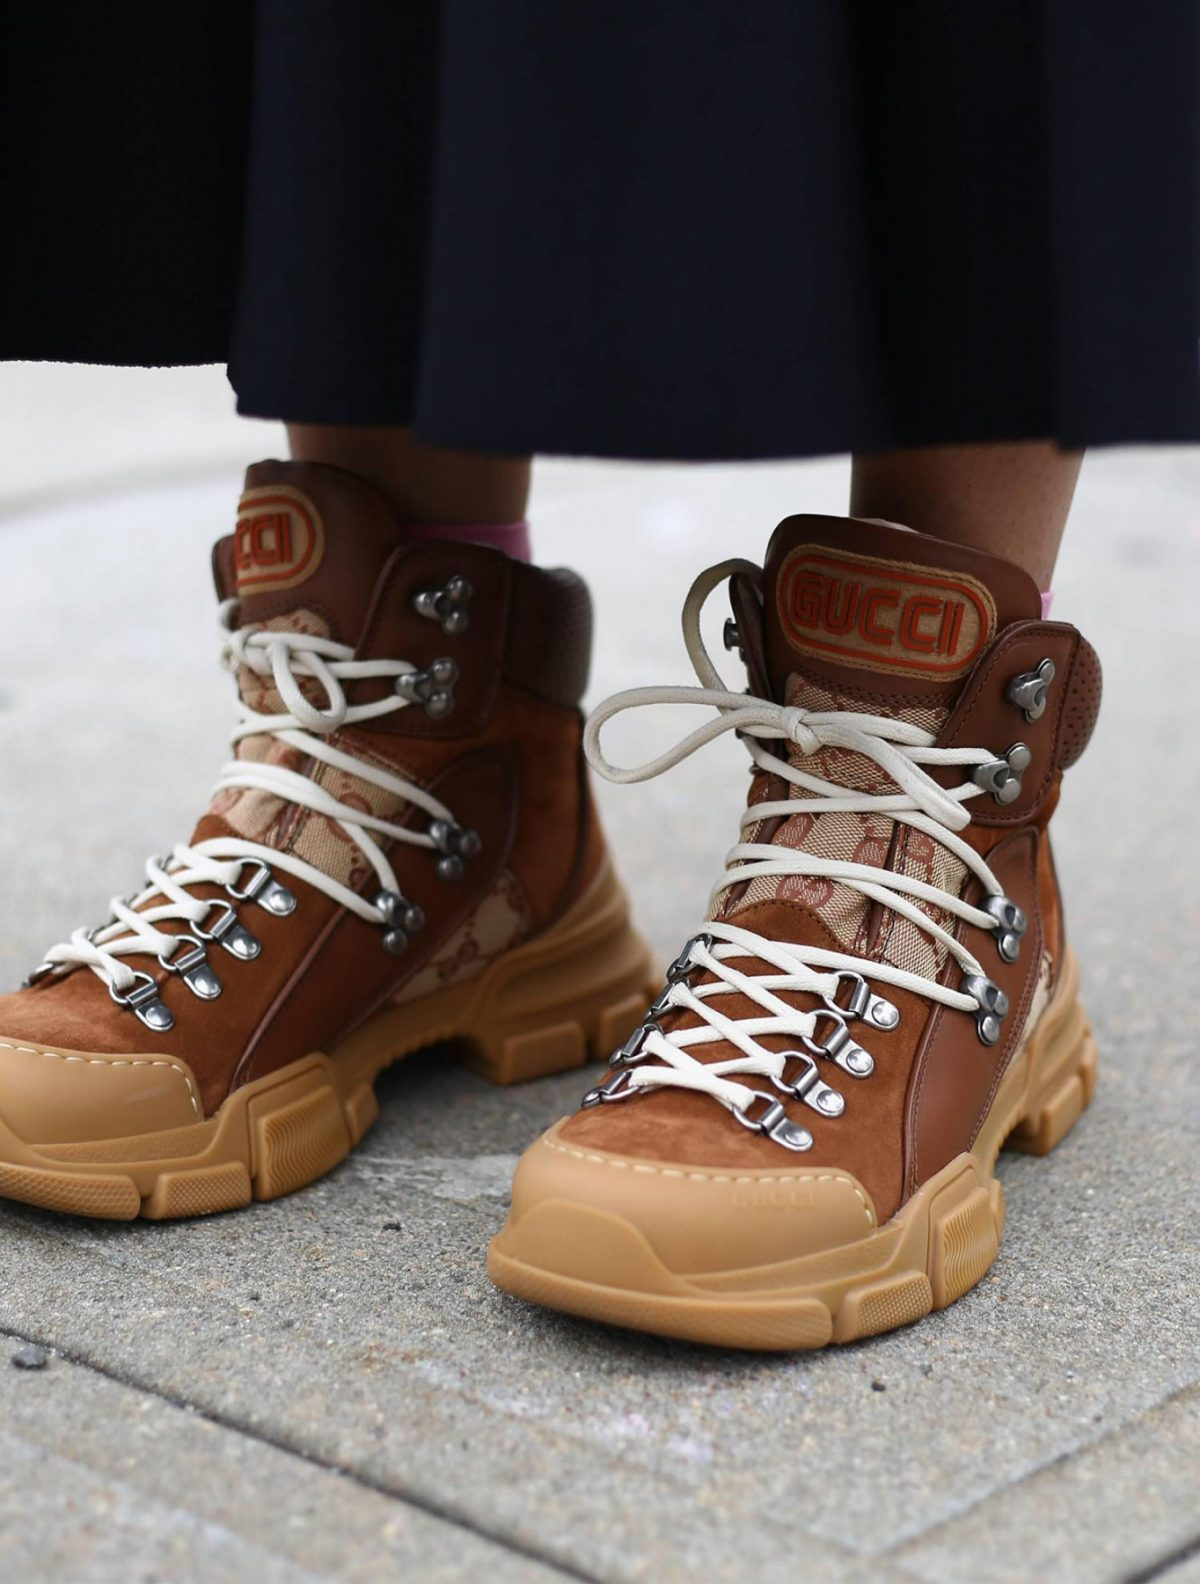 Gucci hiking boots